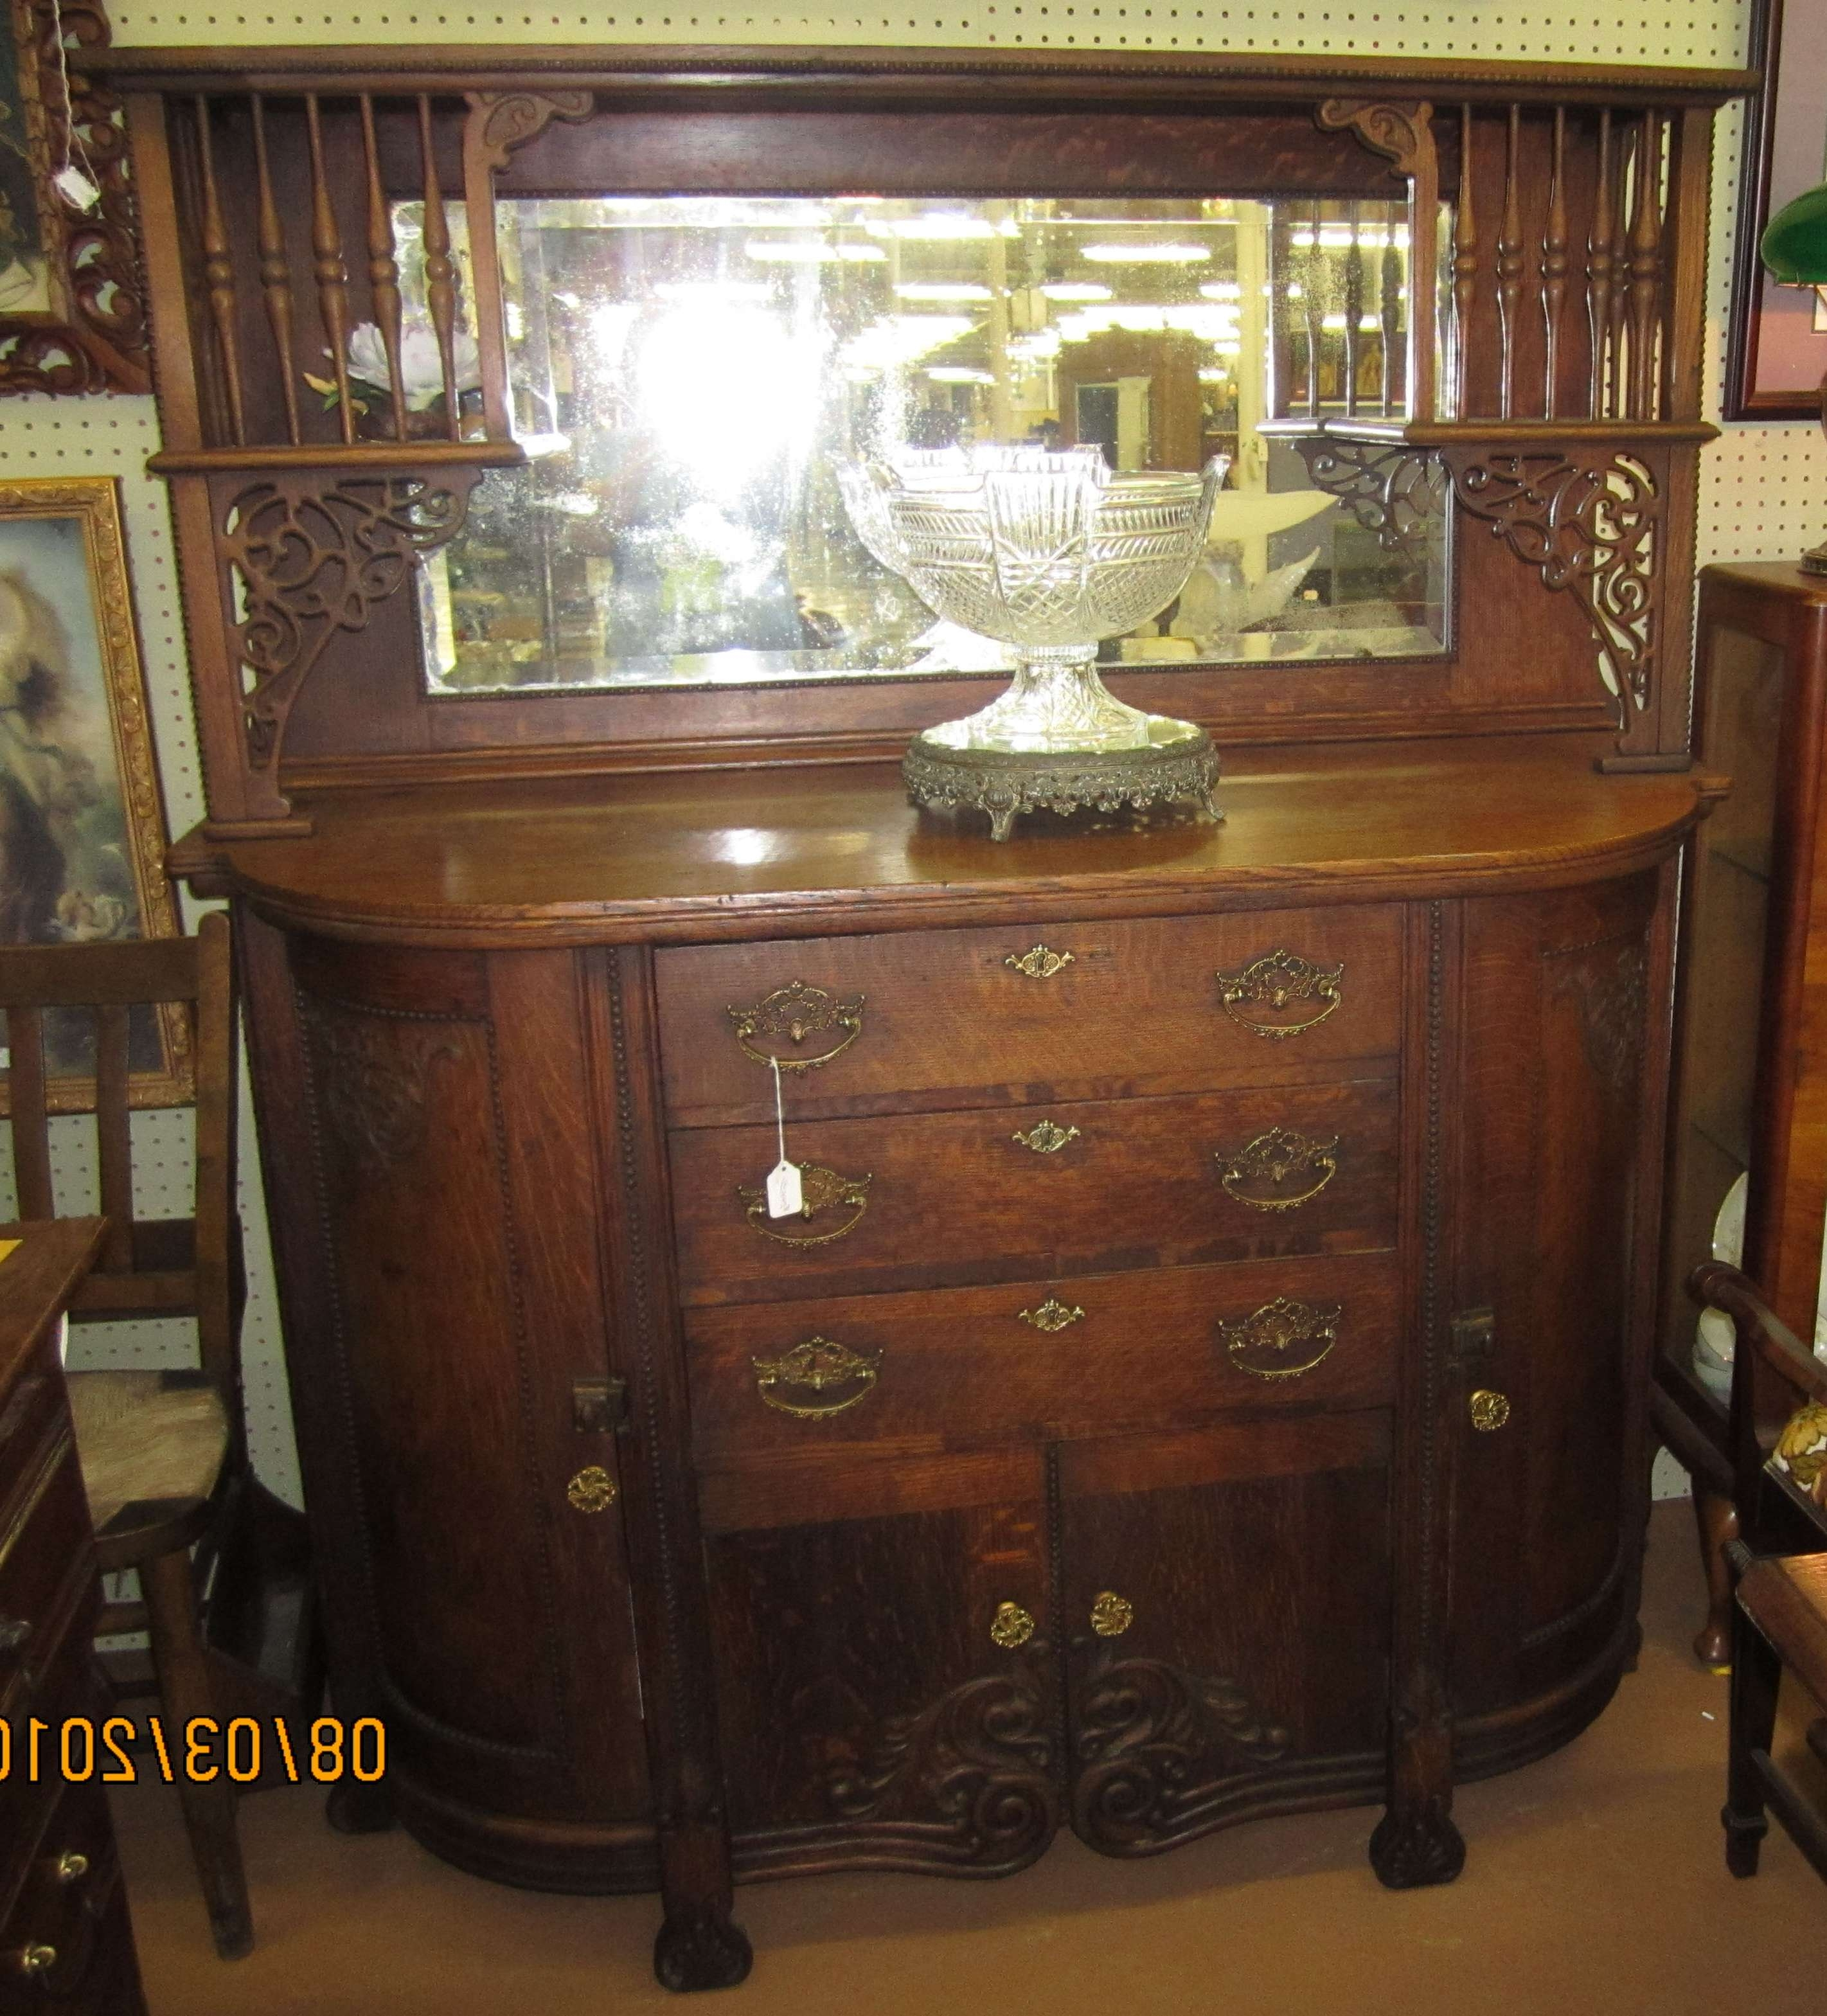 1800's American Oak Sideboard/buffet For Sale | Antiques Within Antique Sideboards Buffets (Gallery 7 of 20)